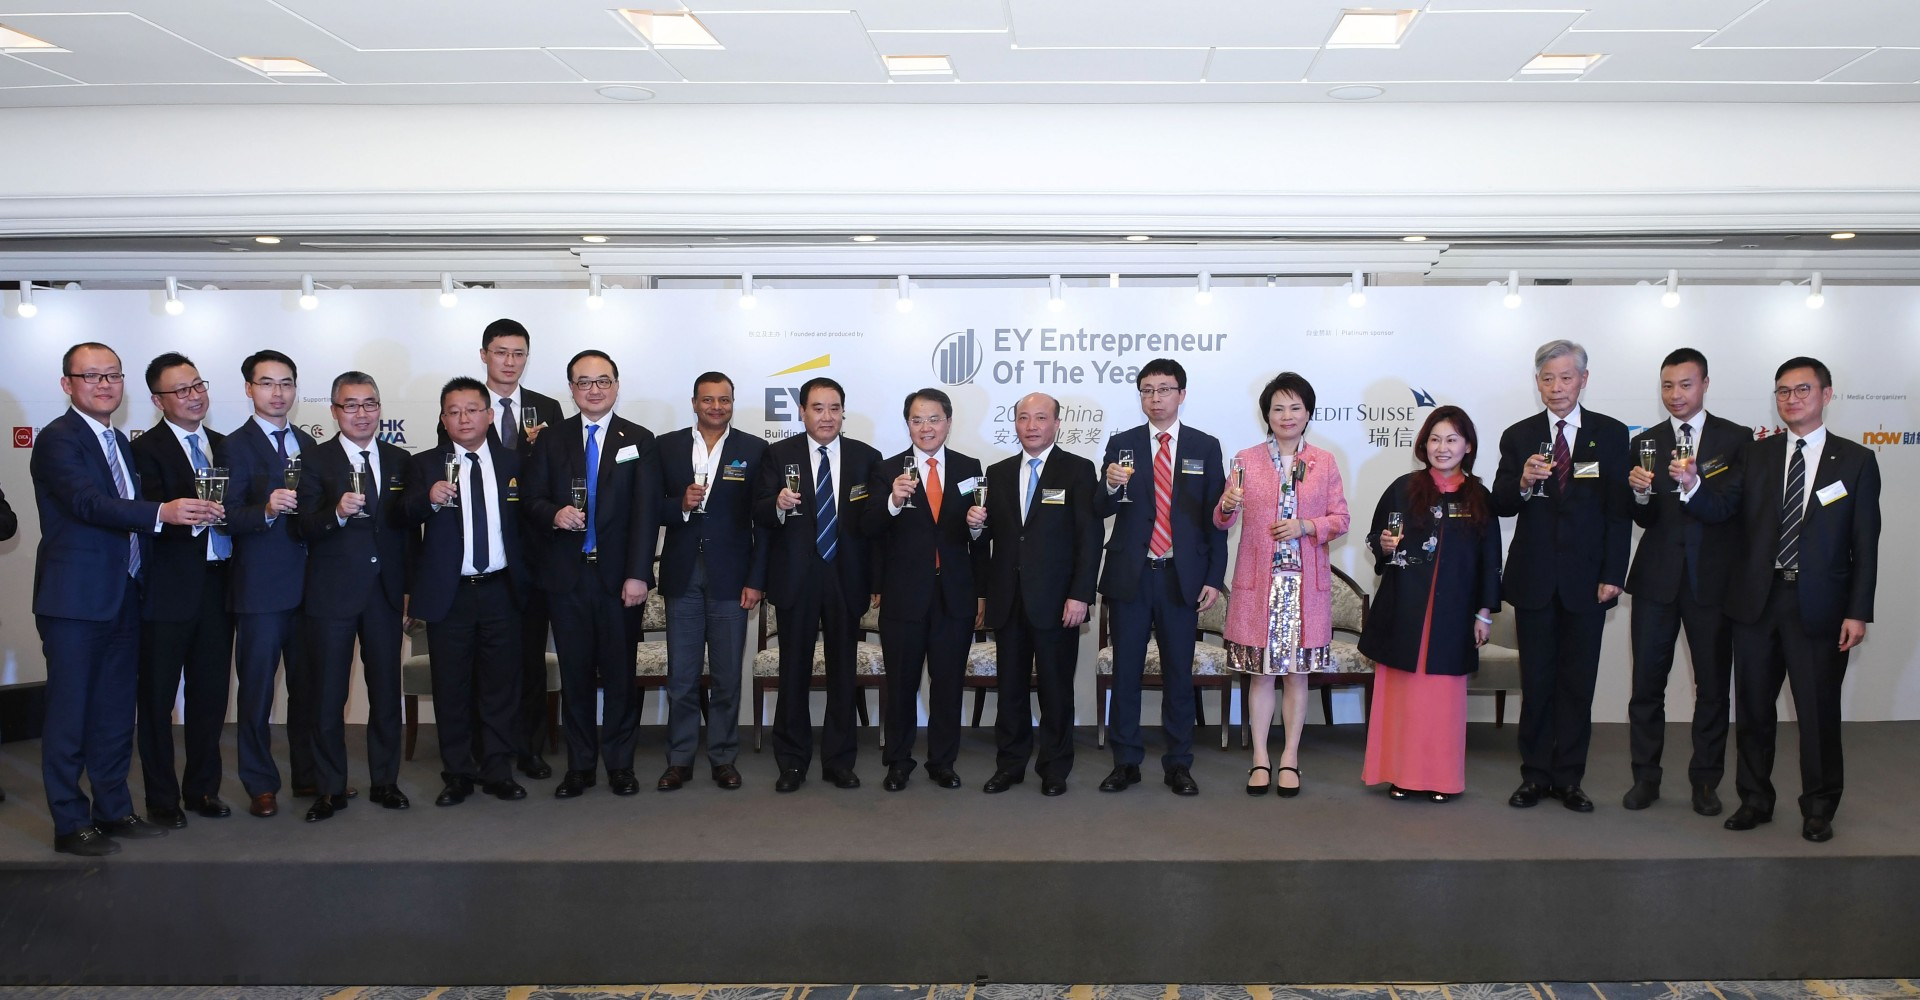 EY Entrepreneur Of The Year 2016 China Co-Chairmen Michael Bi and Cheekong Lai with judges and winners